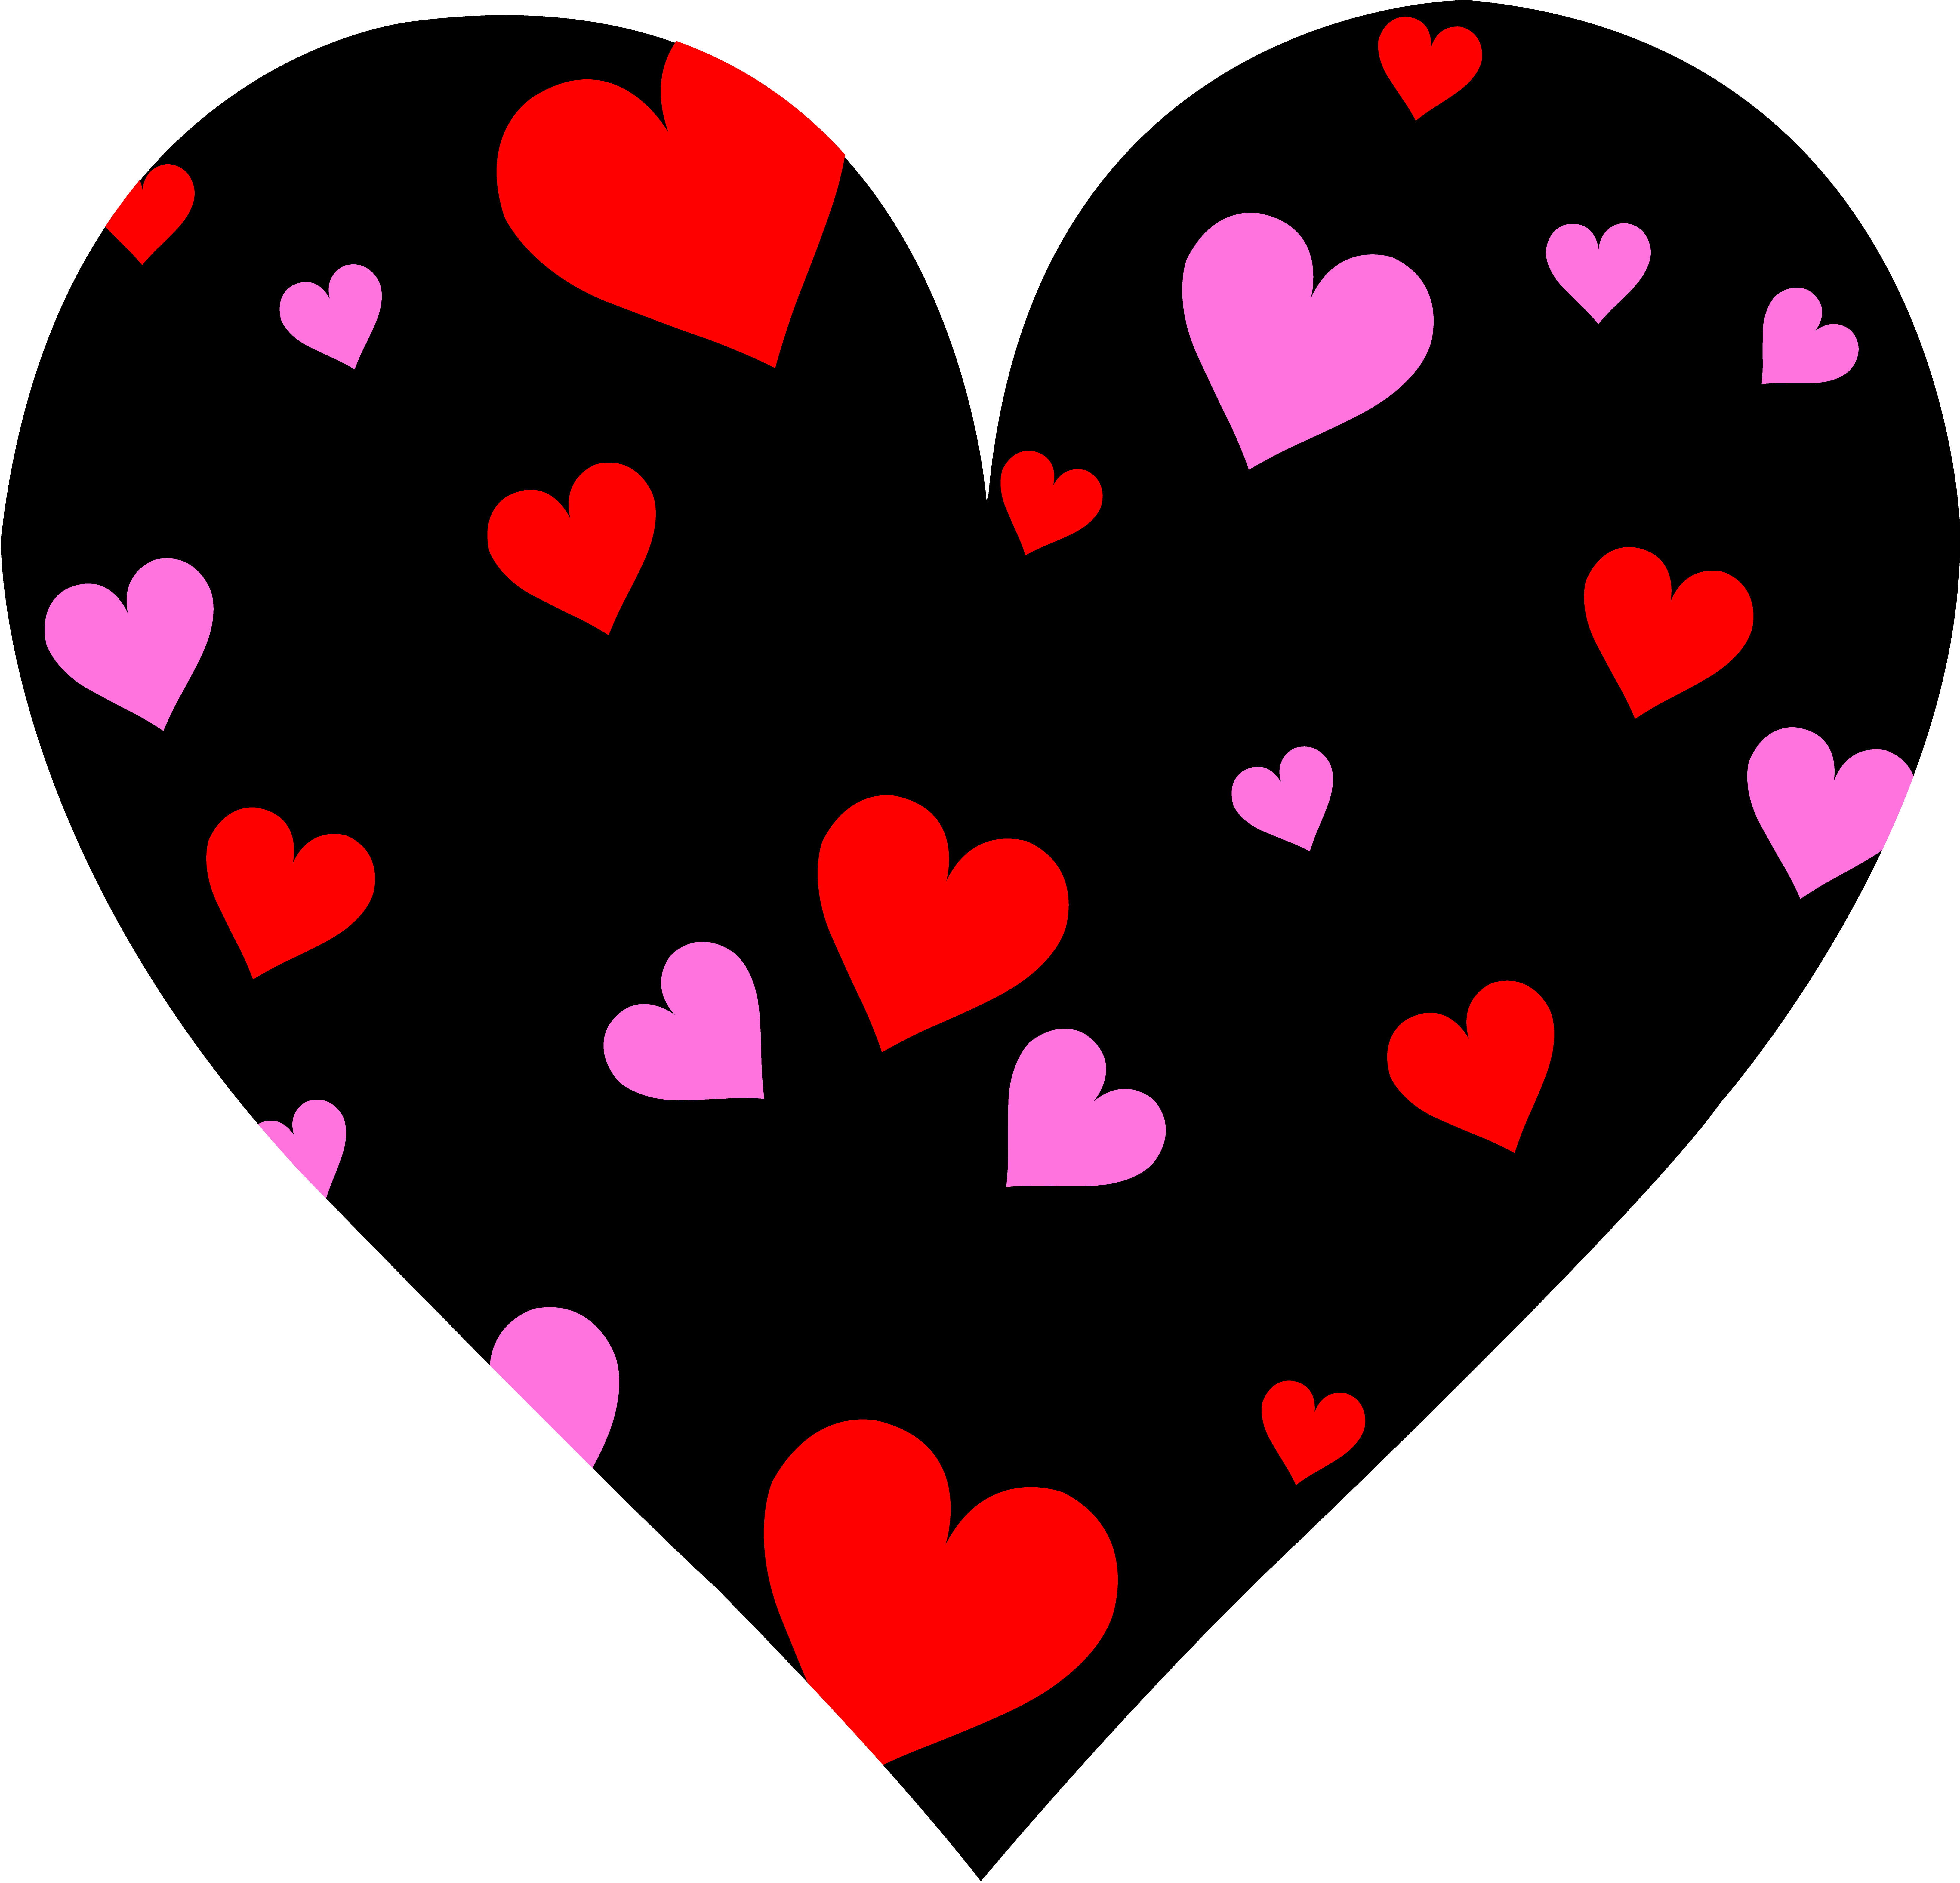 Free Valentine Heart Clipart, Download Free Clip Art, Free.